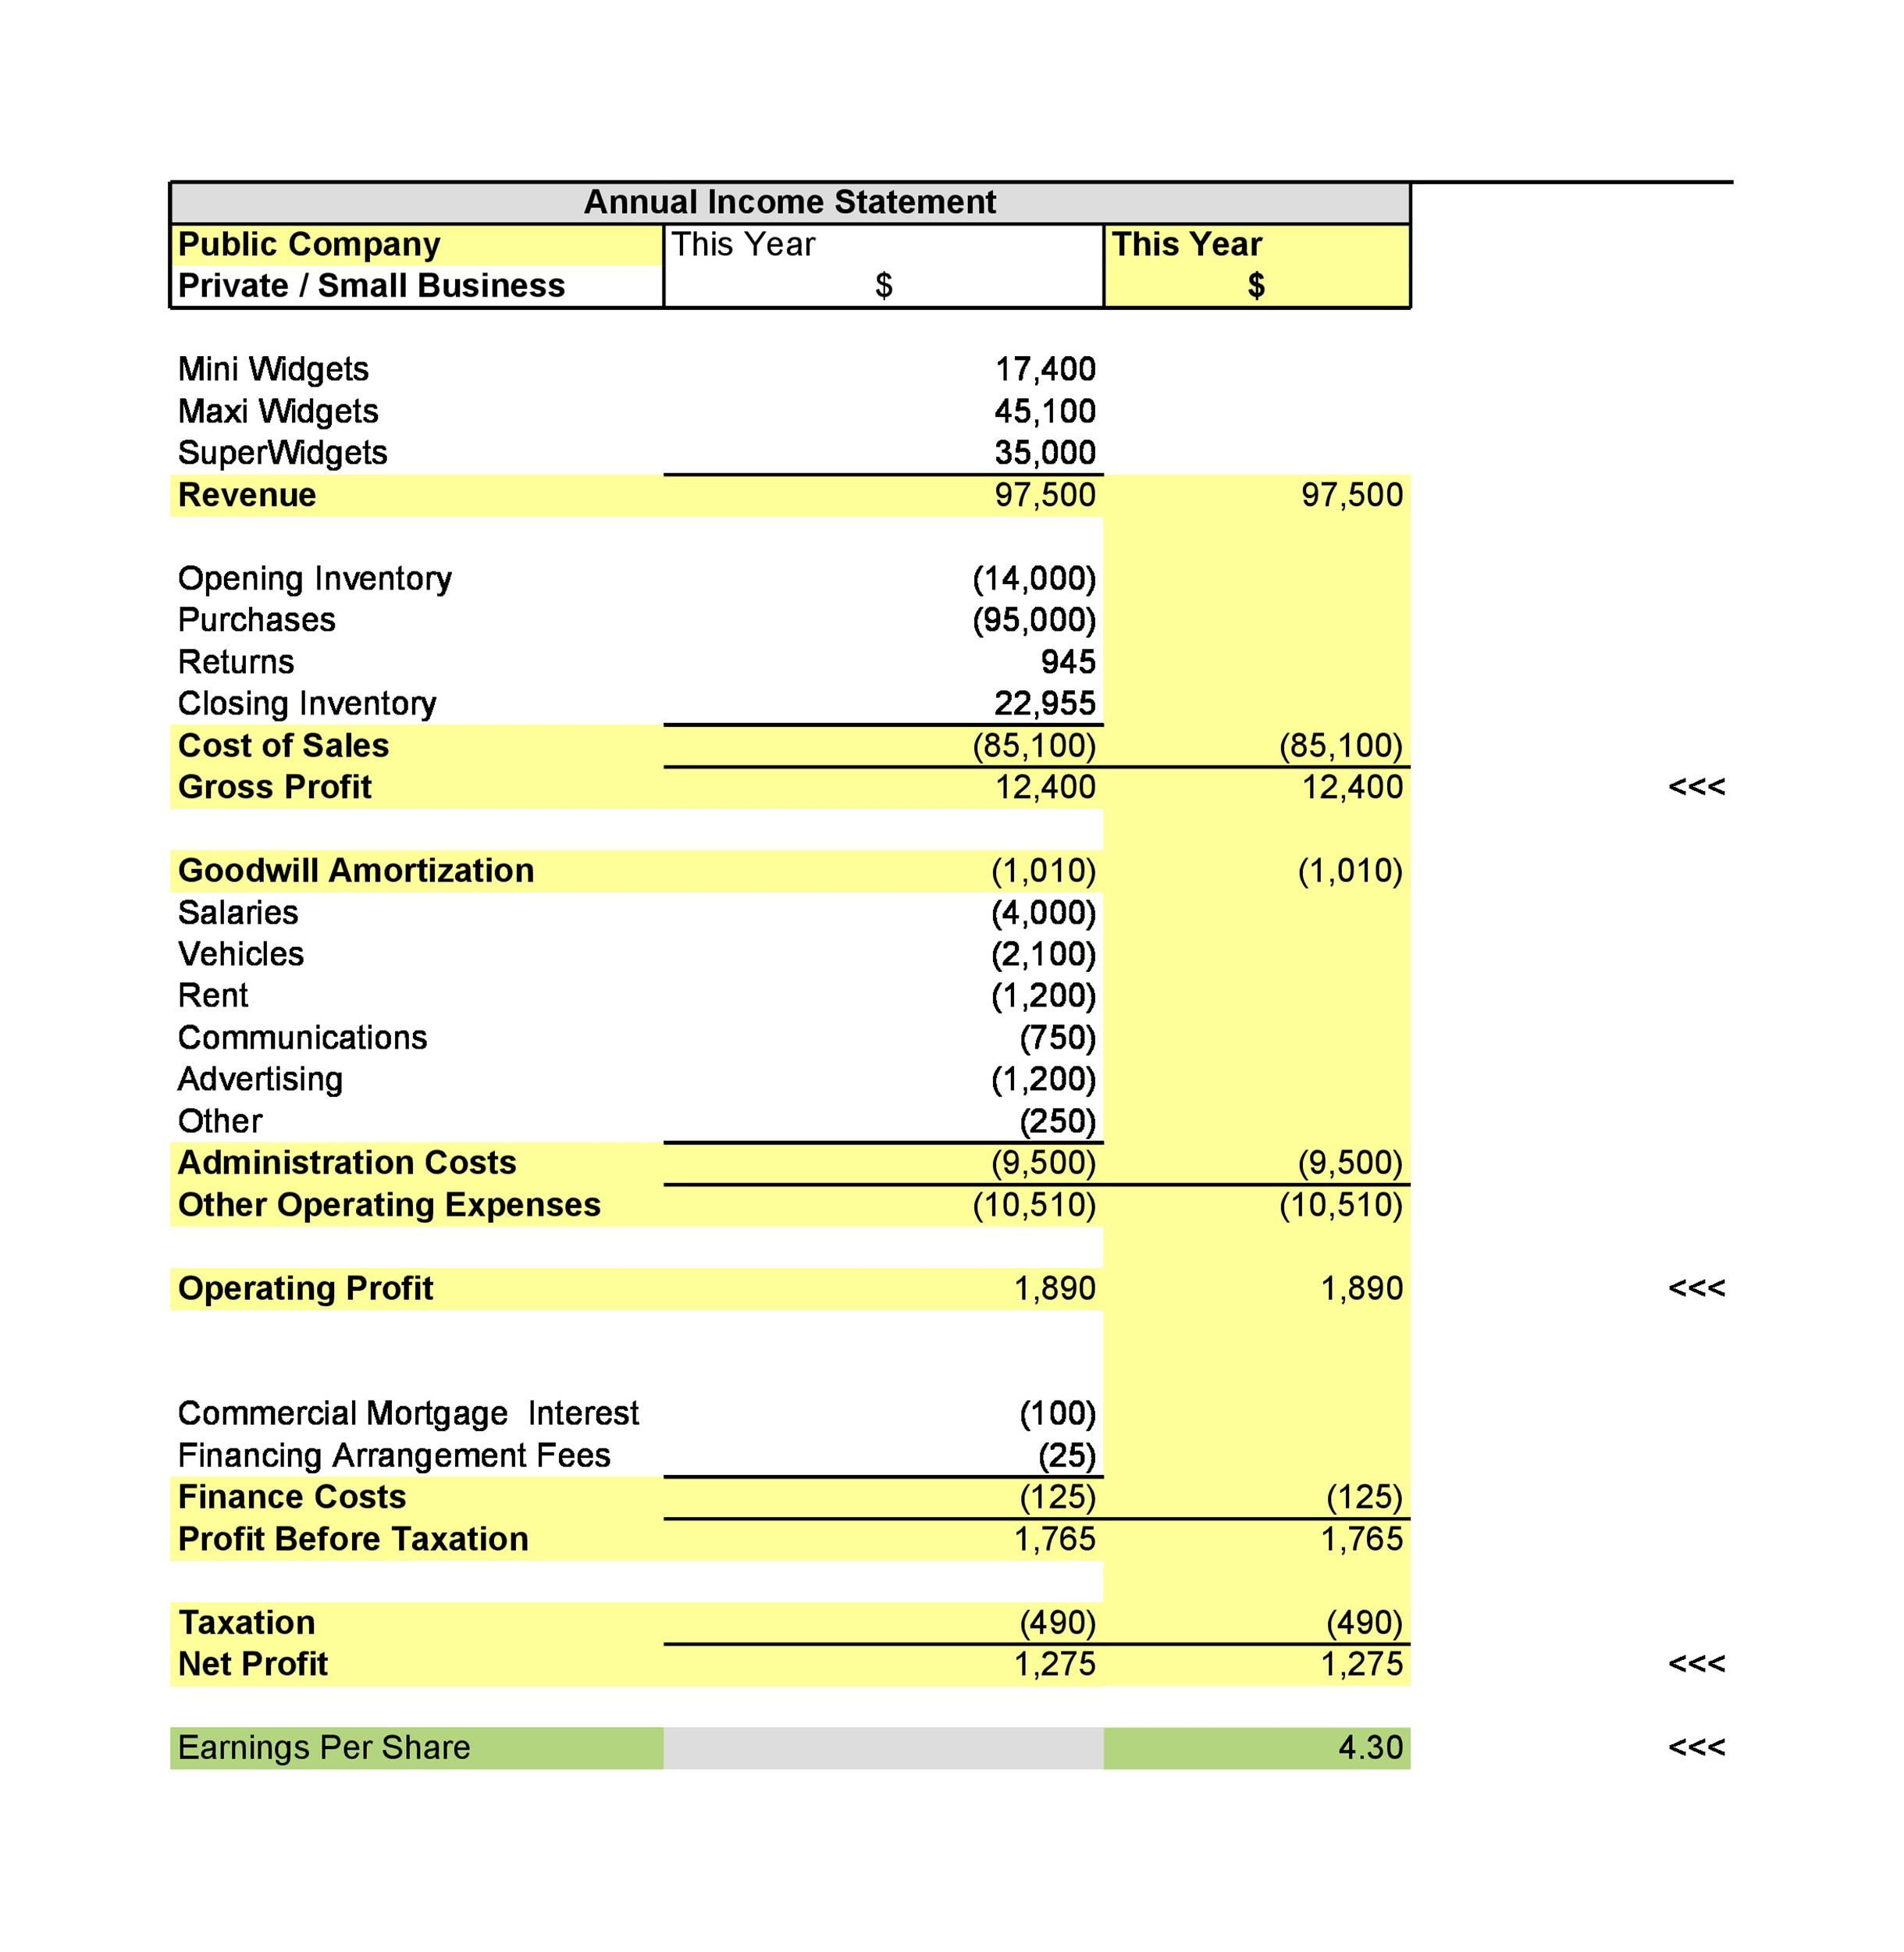 009 Shocking Income Statement Format In Excel Download High Definition Full